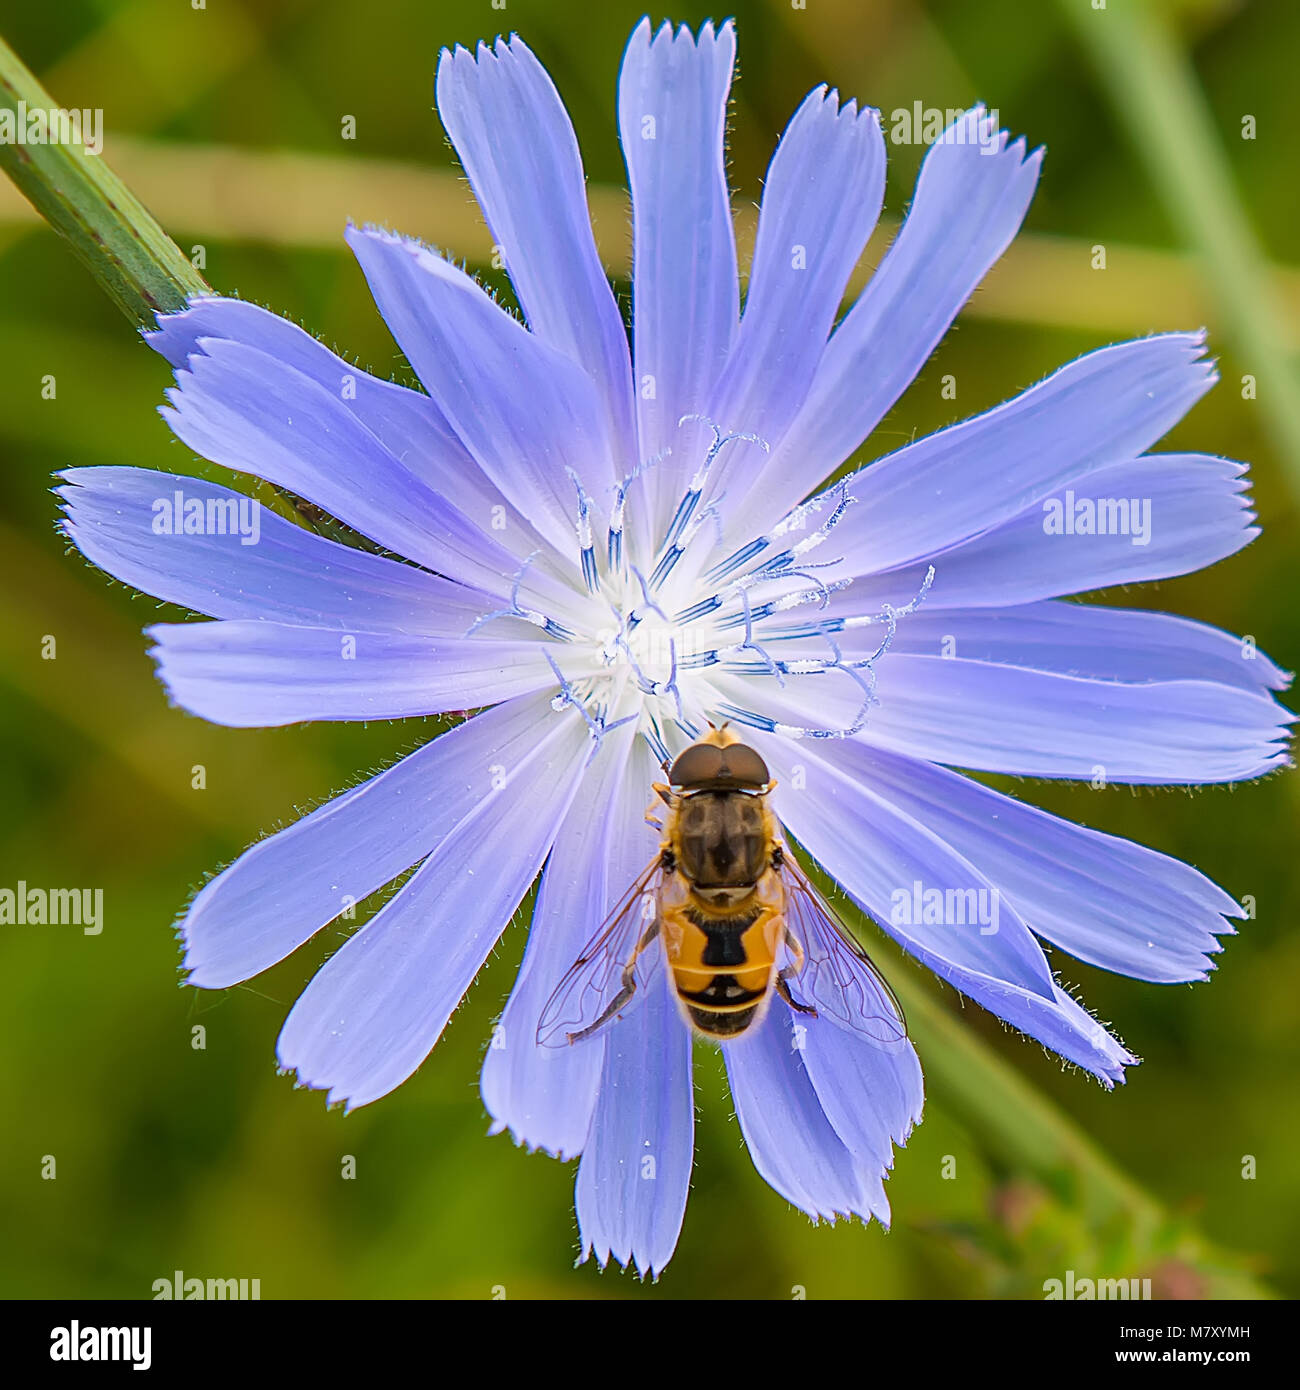 Ivy flower insect macro stock photos ivy flower insect macro stock bee jerk sits on a blue flower summer season stock image izmirmasajfo